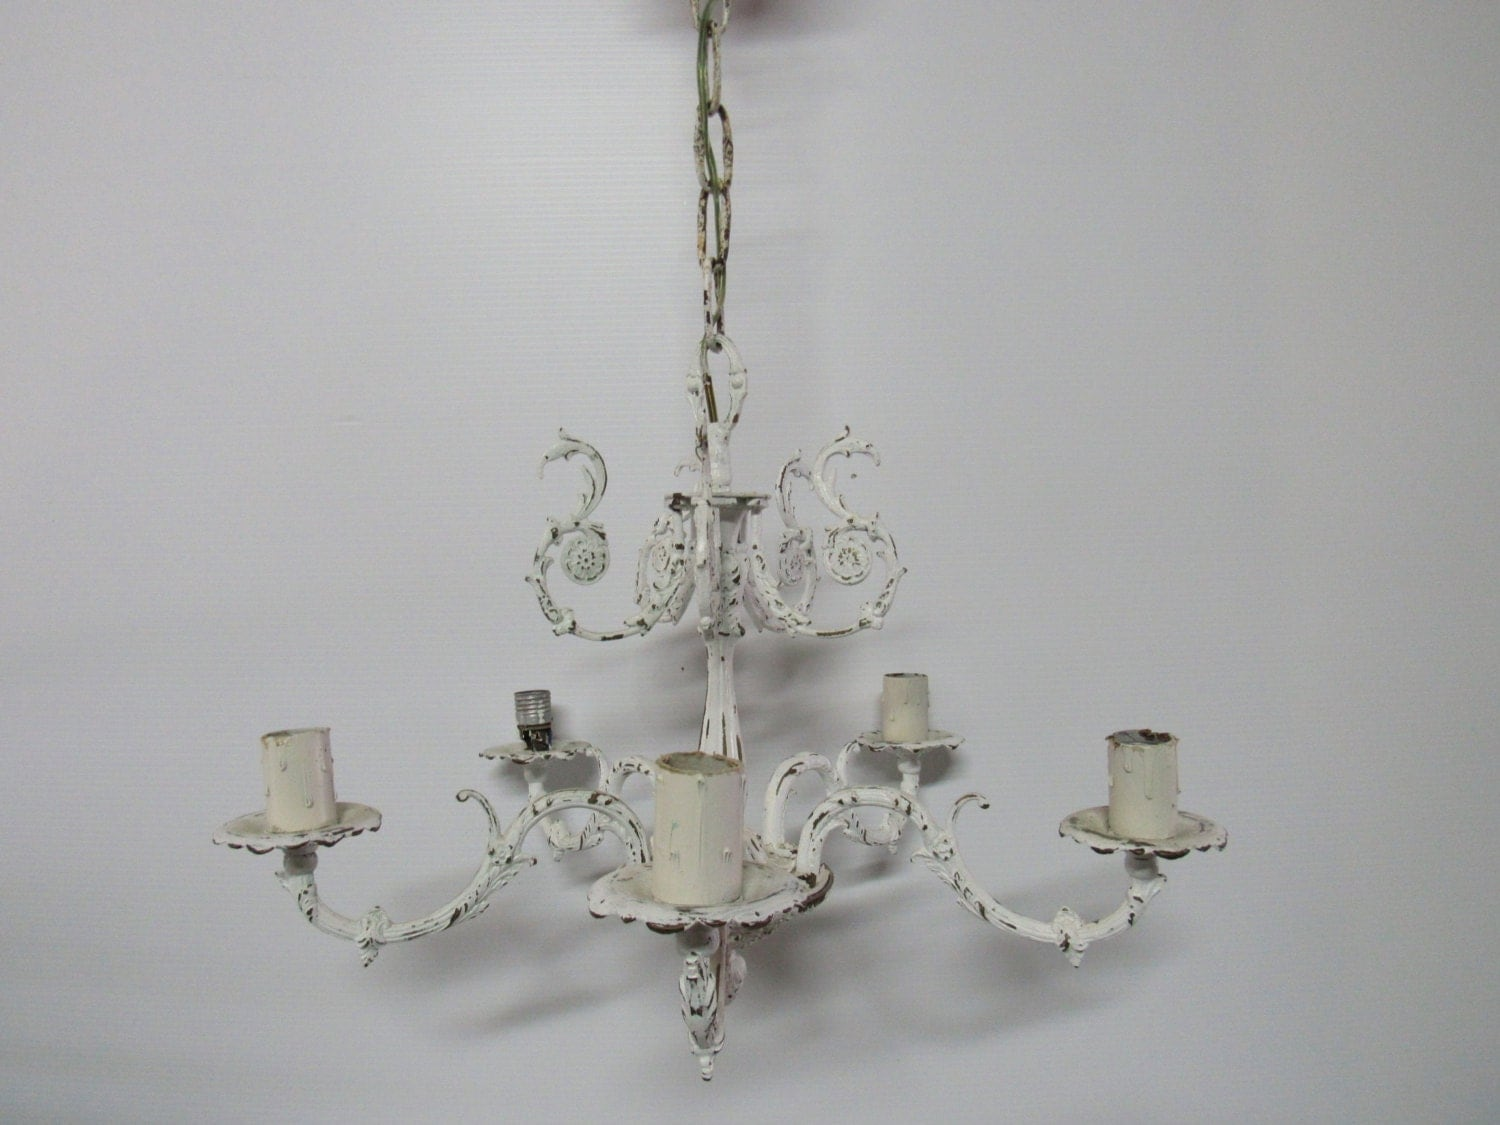 Shabby Chic Vintage Chandelier Distressed Rustic Wroght Iron